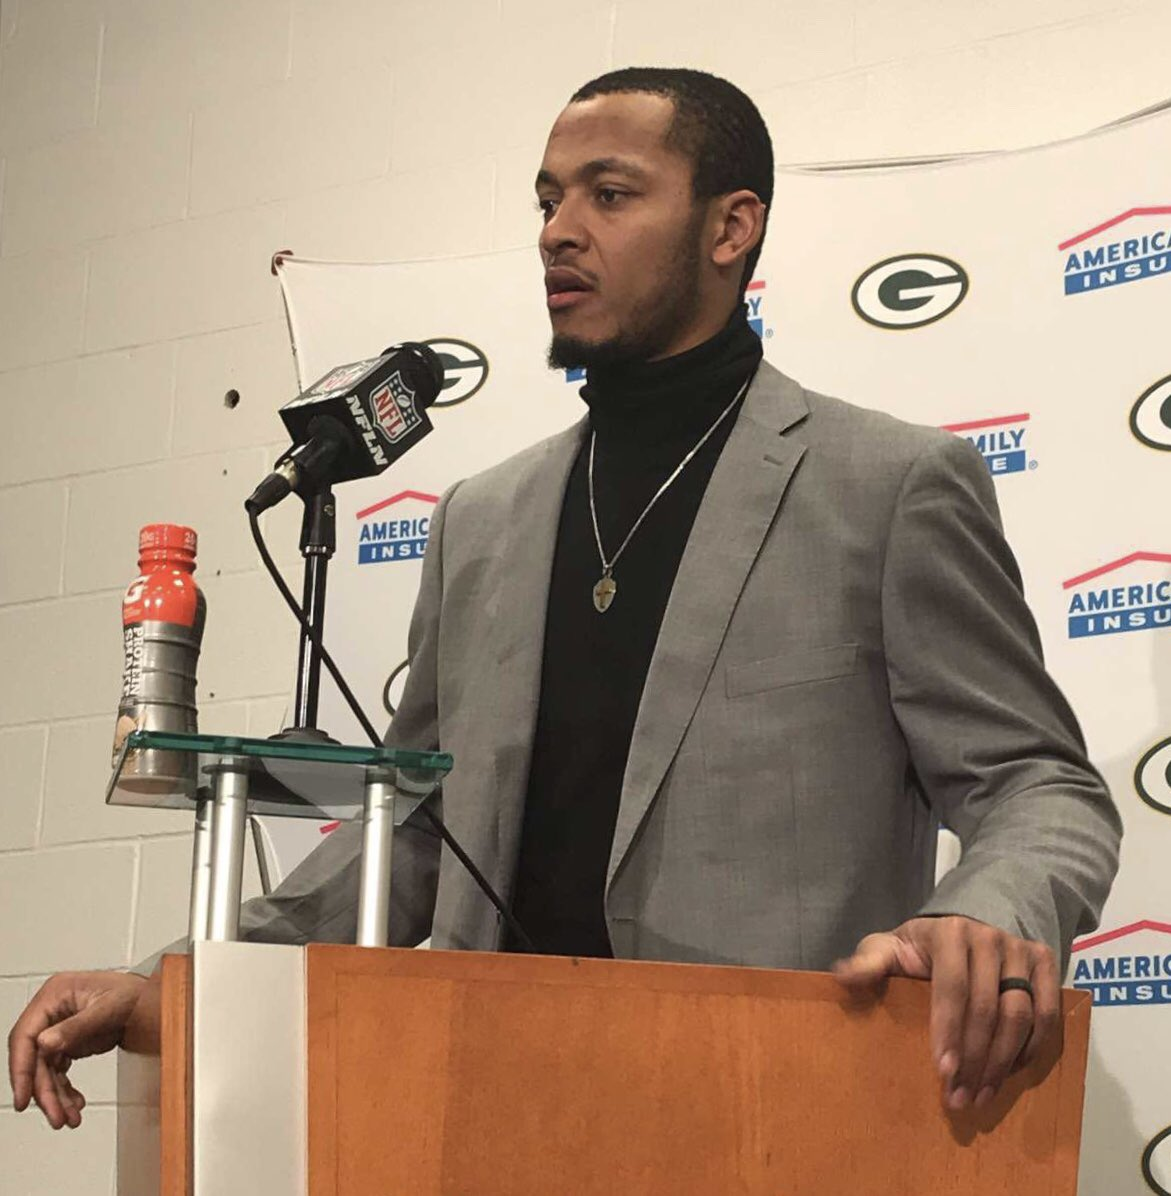 .@bretthundley7: This team has a lot of fight. It's not over yet. #GBvsCLE #GoPackGo https://t.co/JpAEU86ydn